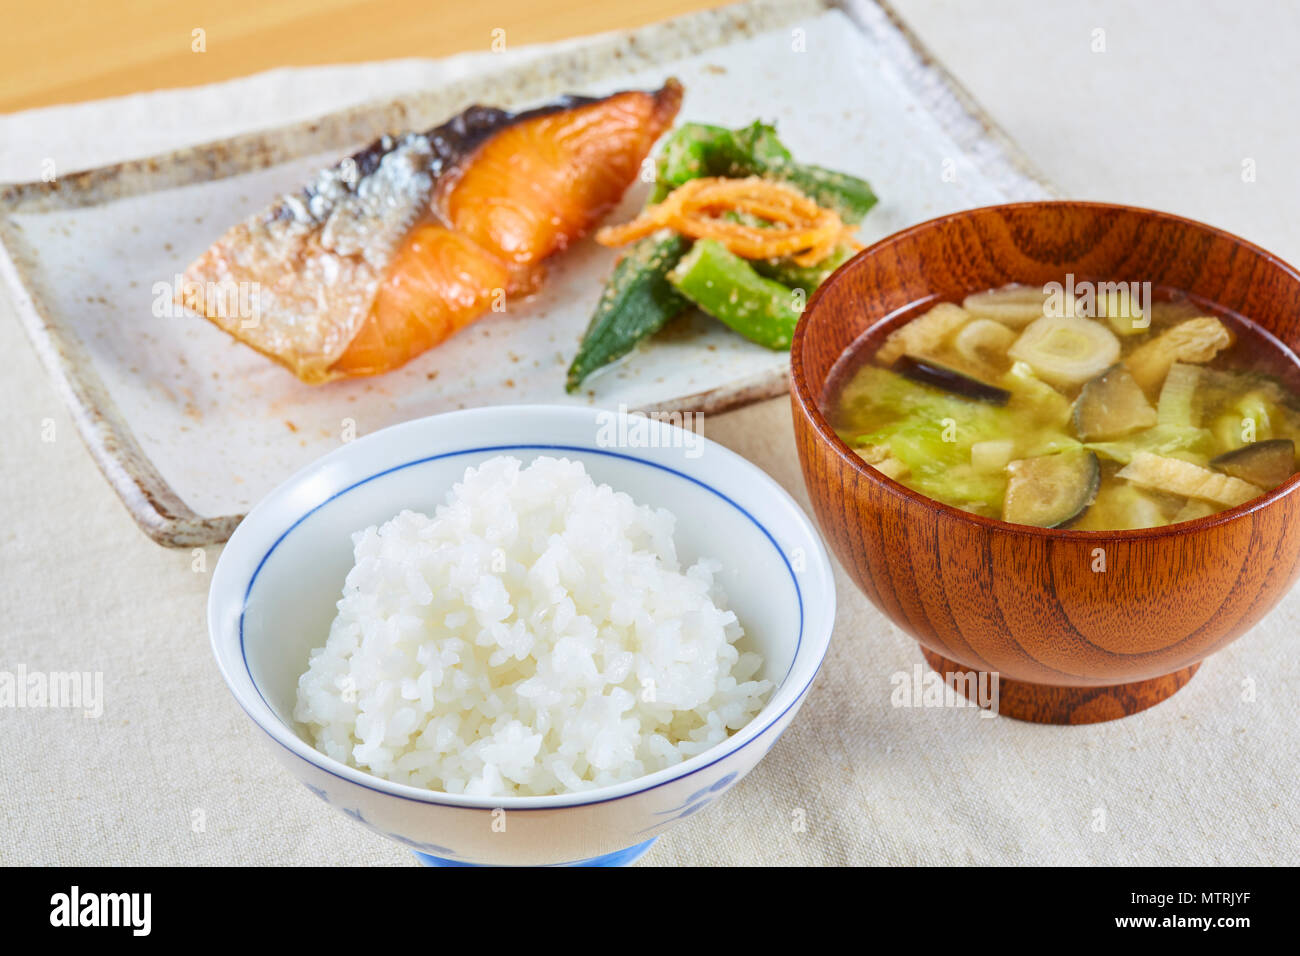 Japanese Style Grilled Fish Rice And Soup Stock Photo Alamy